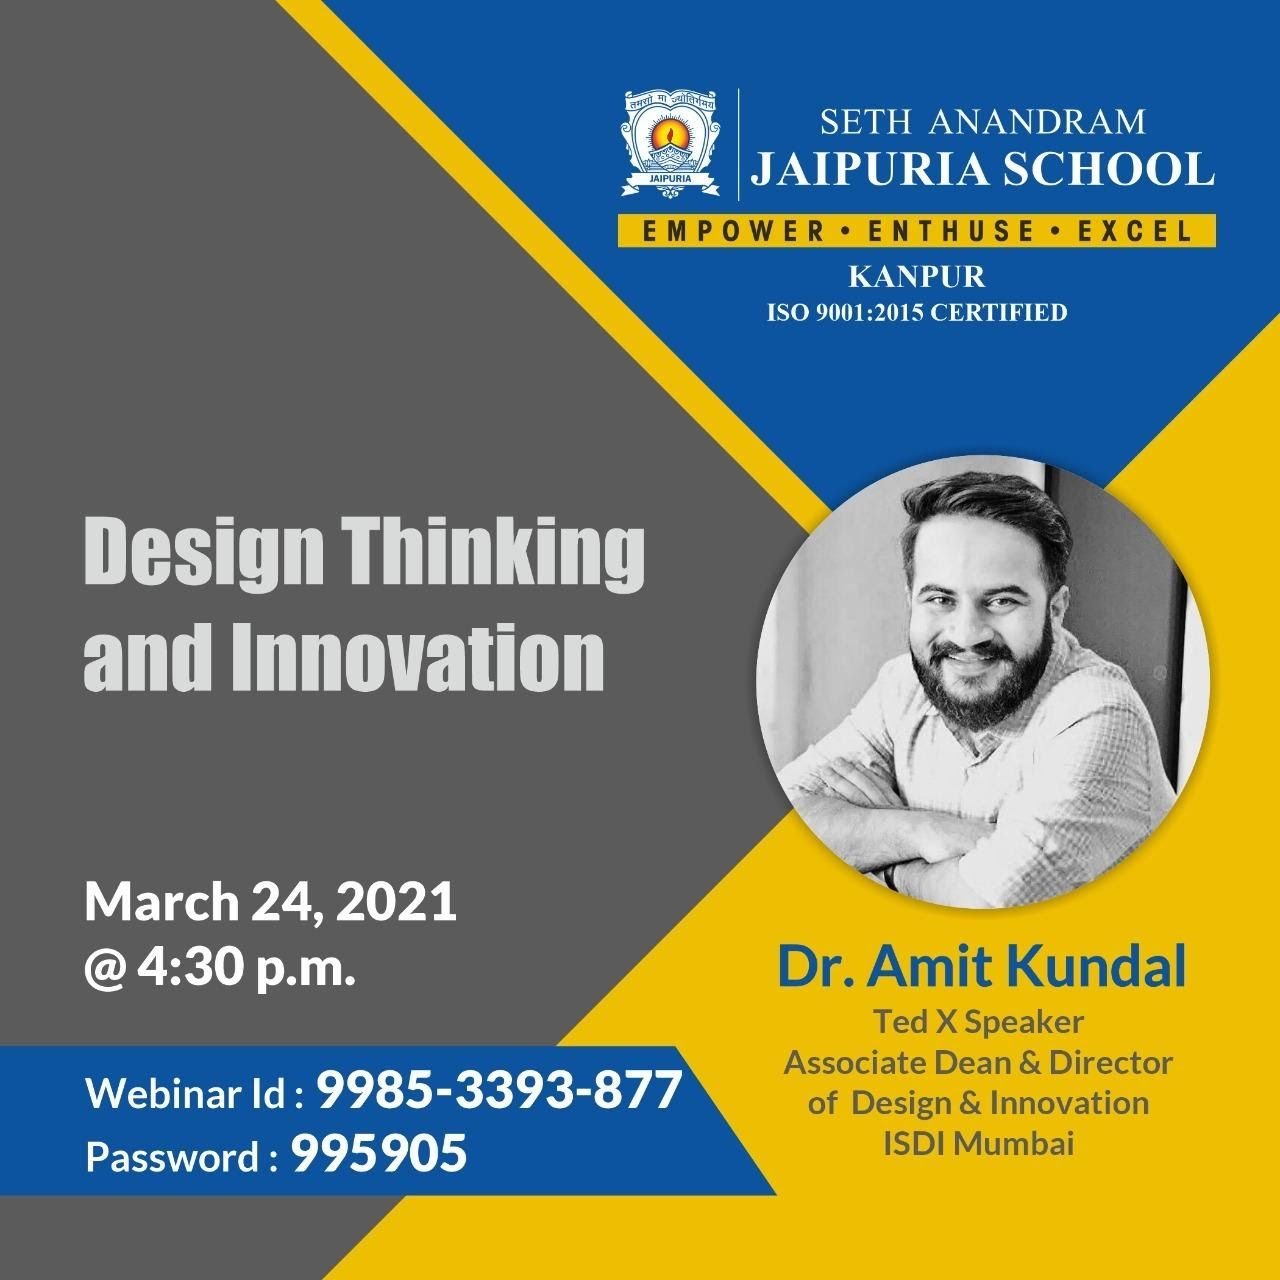 REPORT OF DESIGN THINKING AND INNOVATION TALK